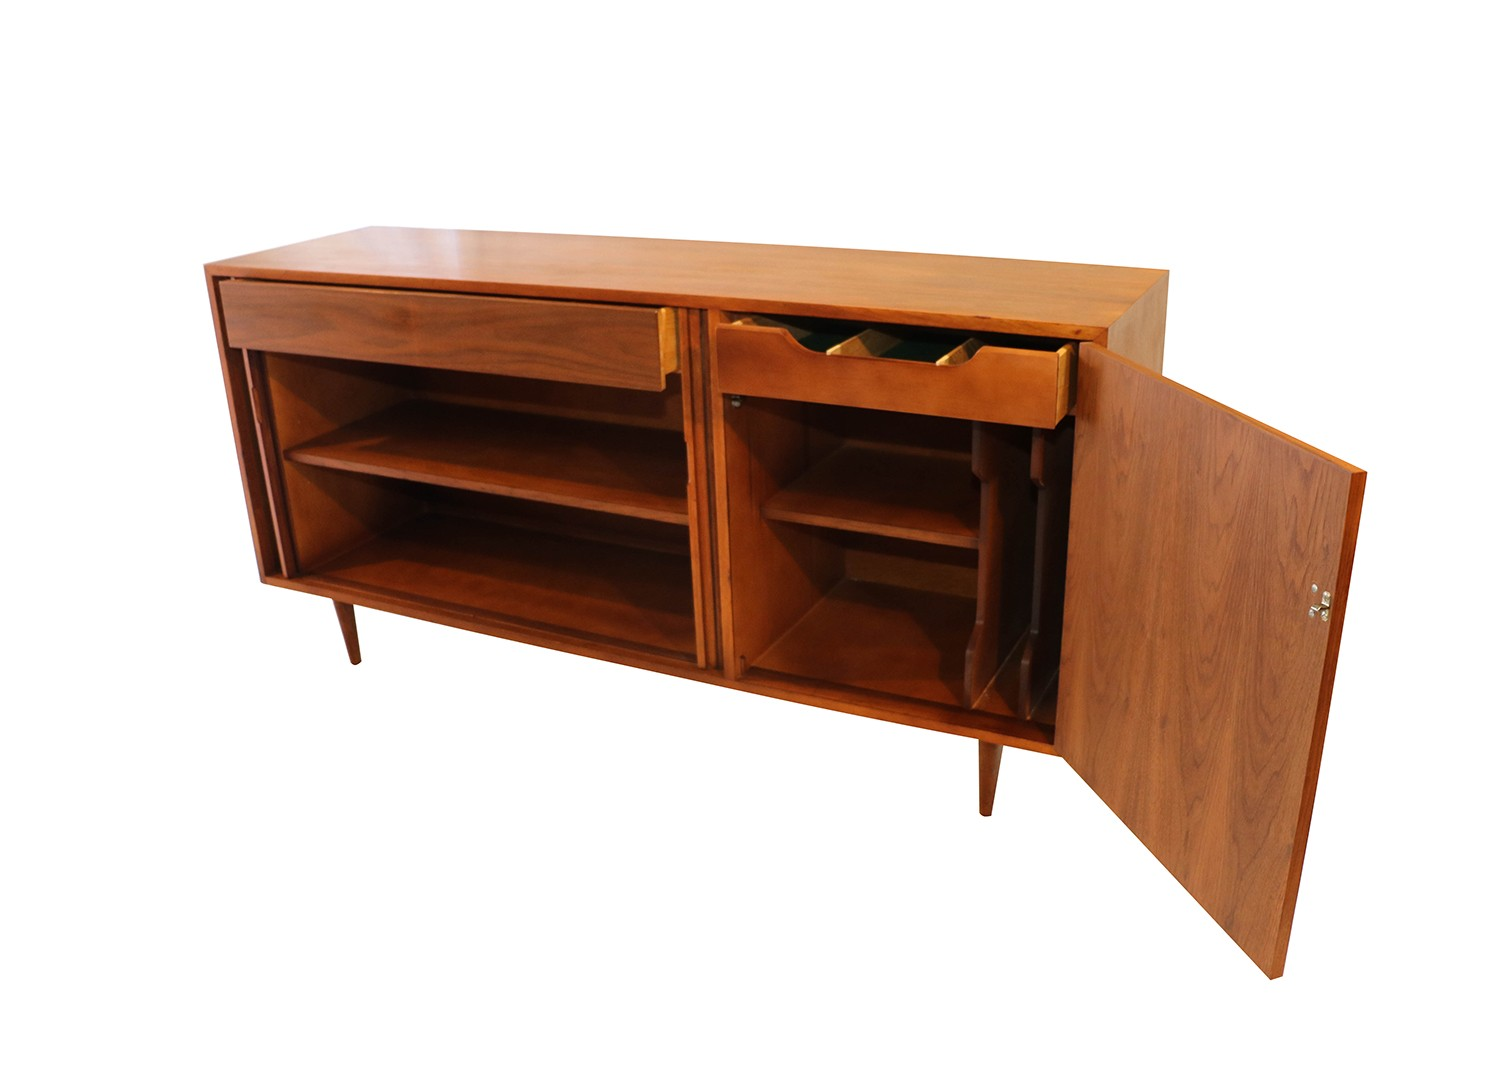 mid century modern tambour door credenza sideboard. Black Bedroom Furniture Sets. Home Design Ideas